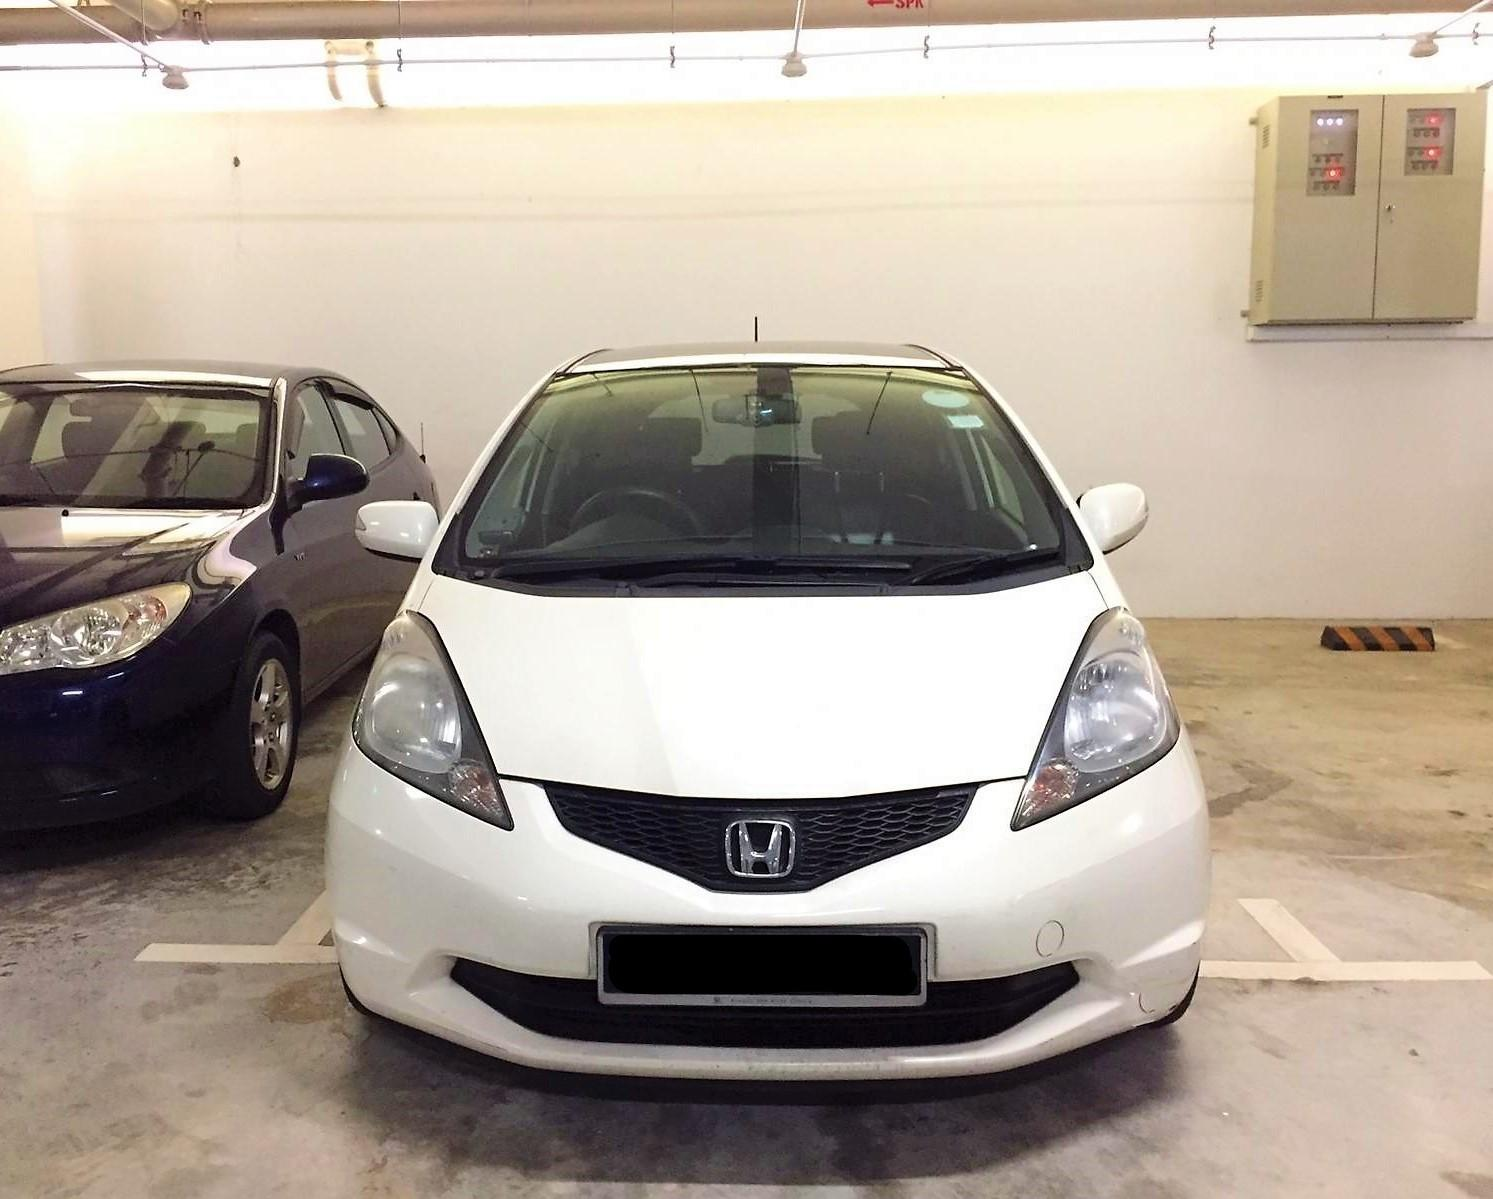 Honda Fit 1.3A CHEAPEST Rental GoJek Grab or Personal use